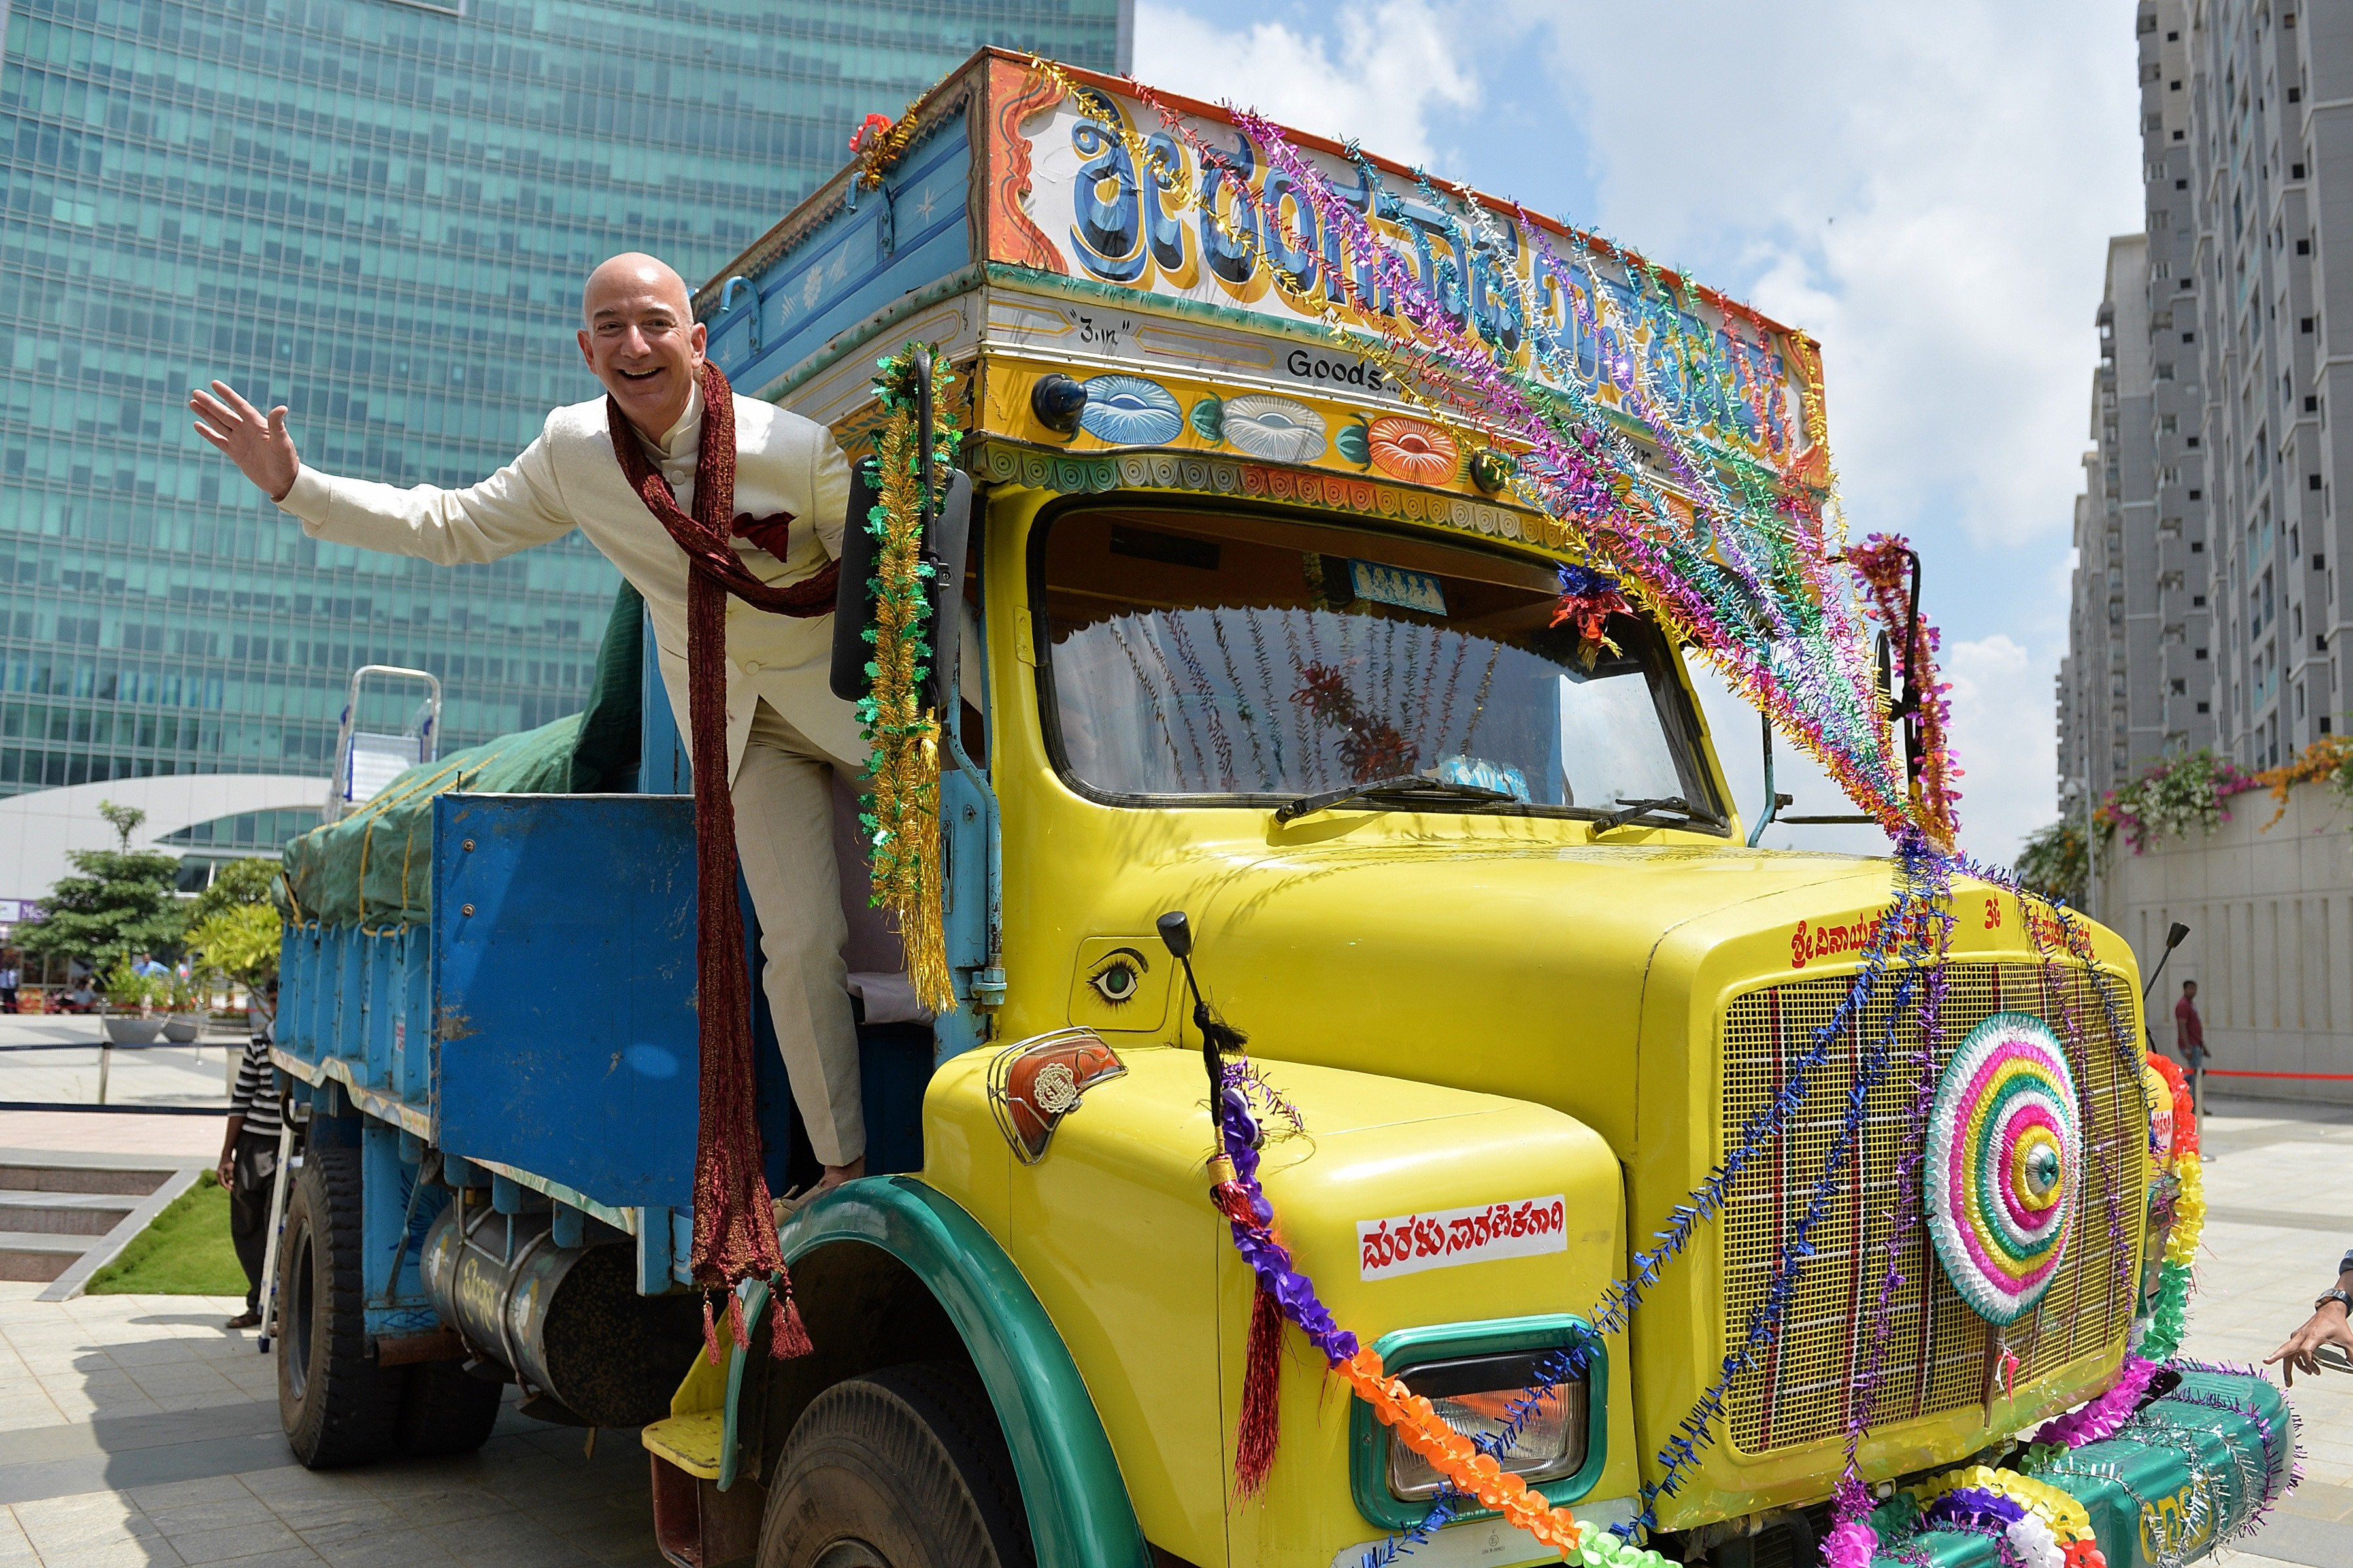 CEO of Amazon.com Jeff Bezos poses on a lorry in Bangalore on Sept. 28, 2014